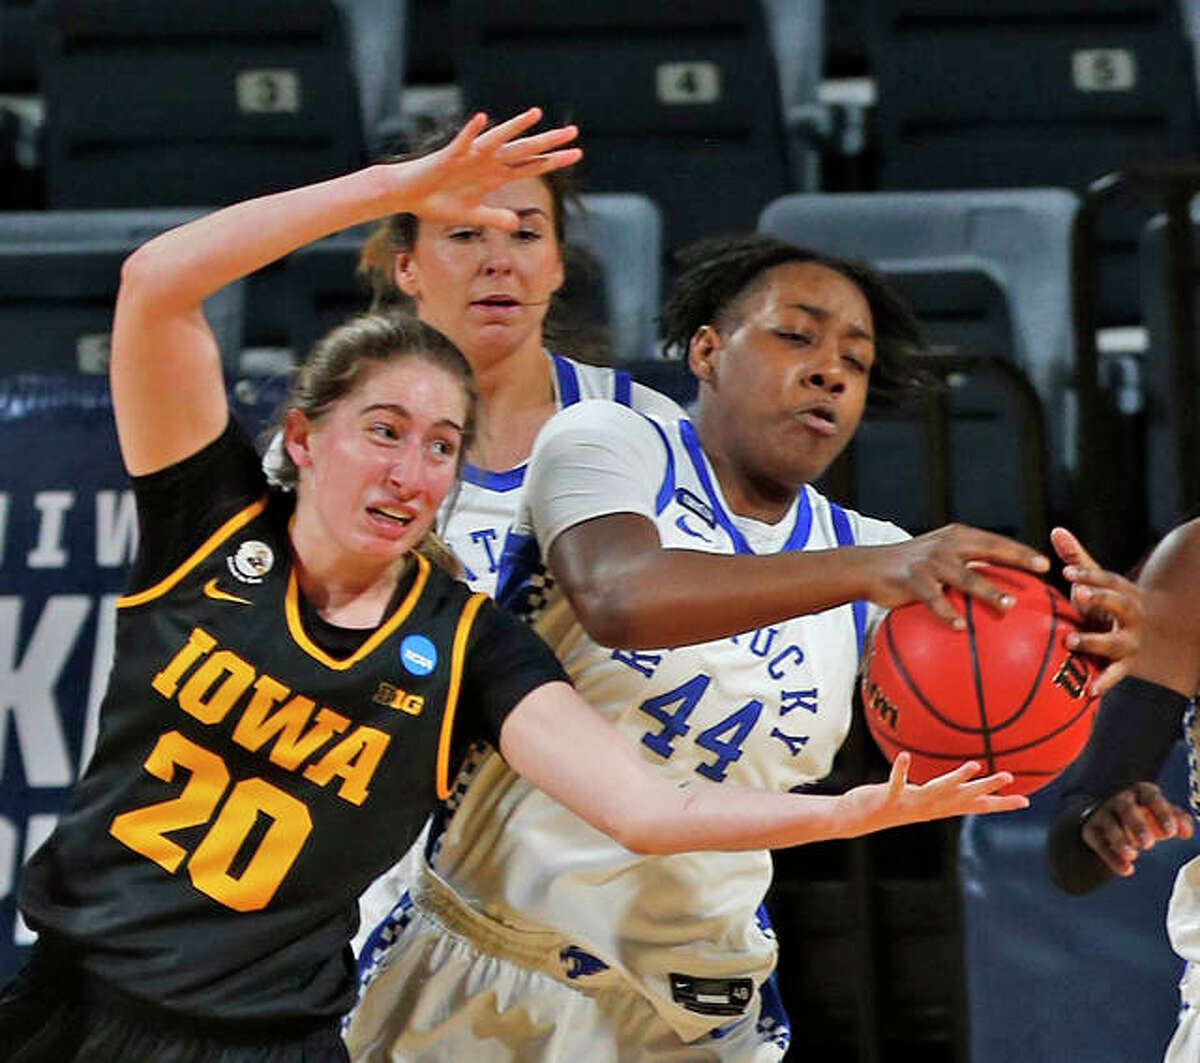 Iowa guard Kate Martin (20) battles Kentucky guard Dre'una Edwards (44) for a rebound during the first half of a college basketball game in the second round of the women's NCAA tournament at the Greehey Arena in San Antonio, Texas, Tuesday, March 23, 2021.